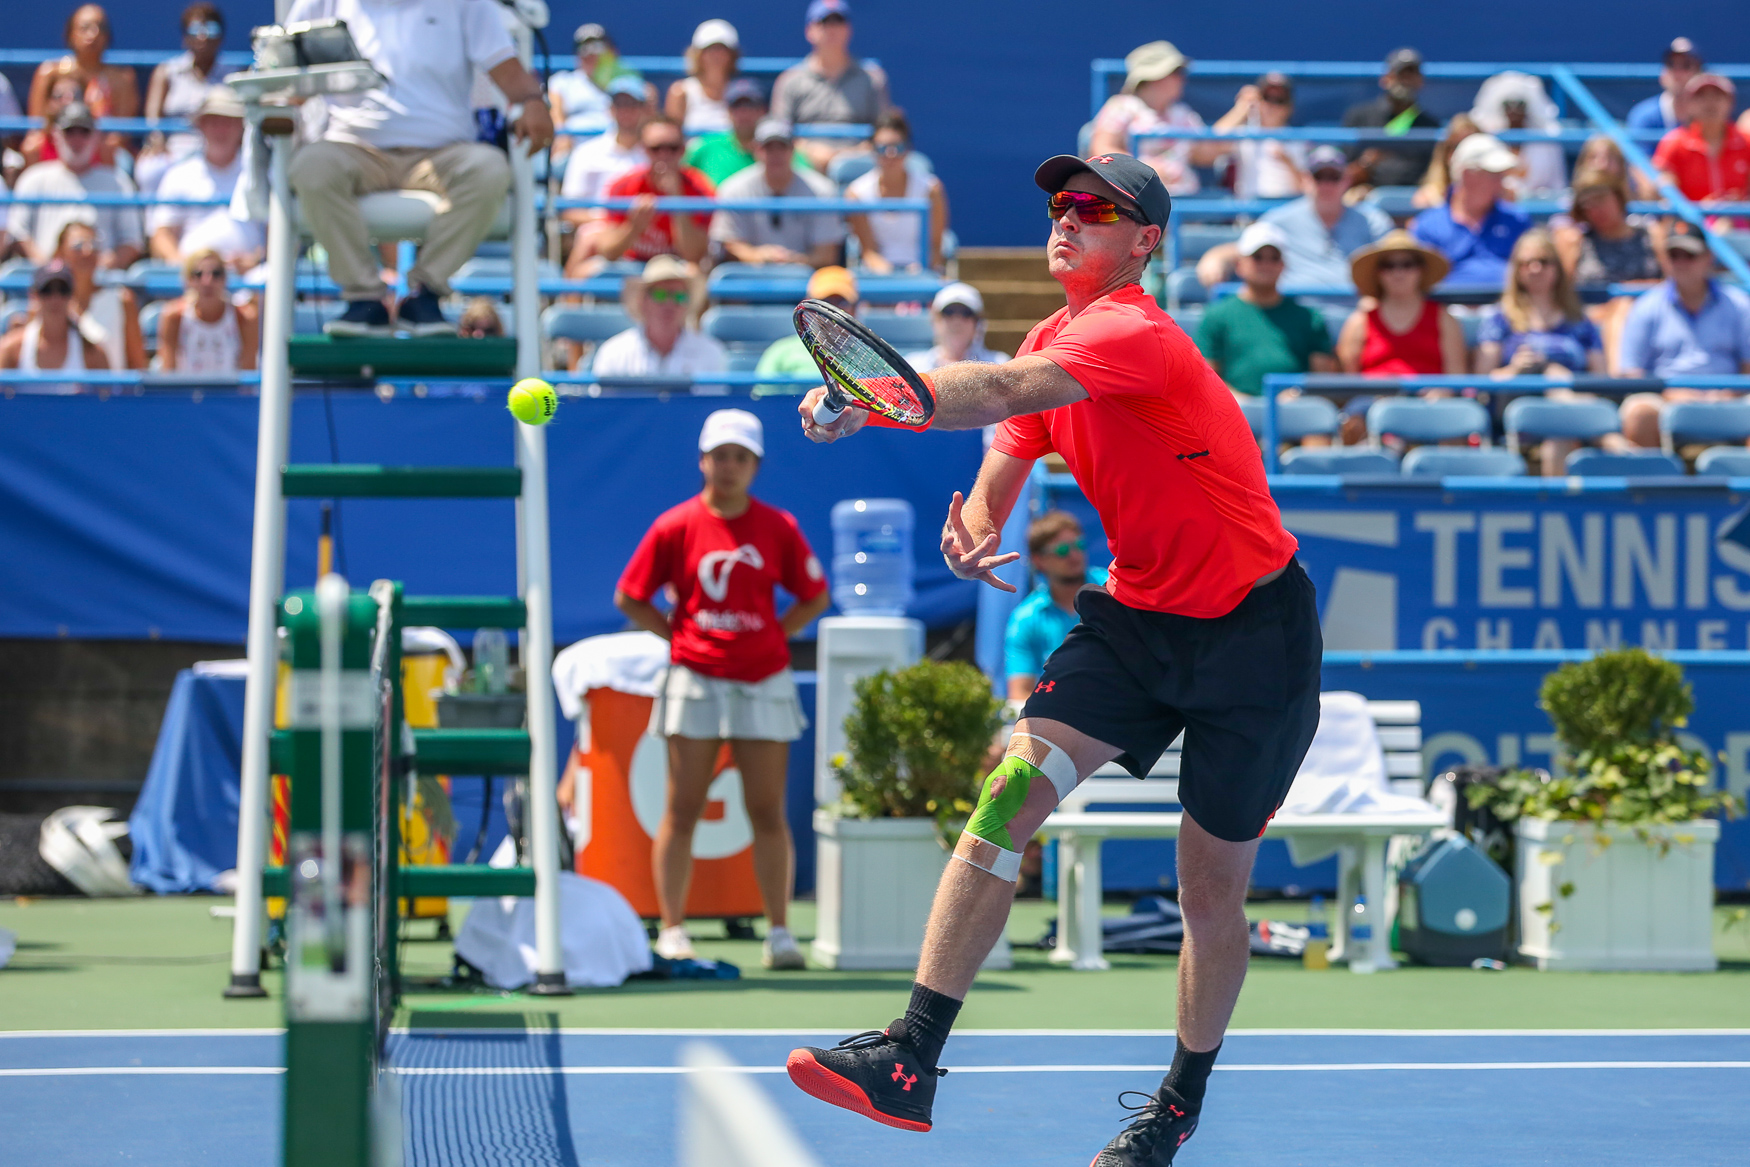 The annual Citi Open tennis tournament closed on August 5 with appearances from some of the world's best athletes. For the men's doubles, Jamie Murray and Bruno Soares triumphed over Mike Bryan and{ }Édouard Roger-Vasselin. Bryan holds the world record for the most Grand Slam titles, but graciously accepted the second-place trophy. (Amanda Andrade-Rhoades/DC Refined)